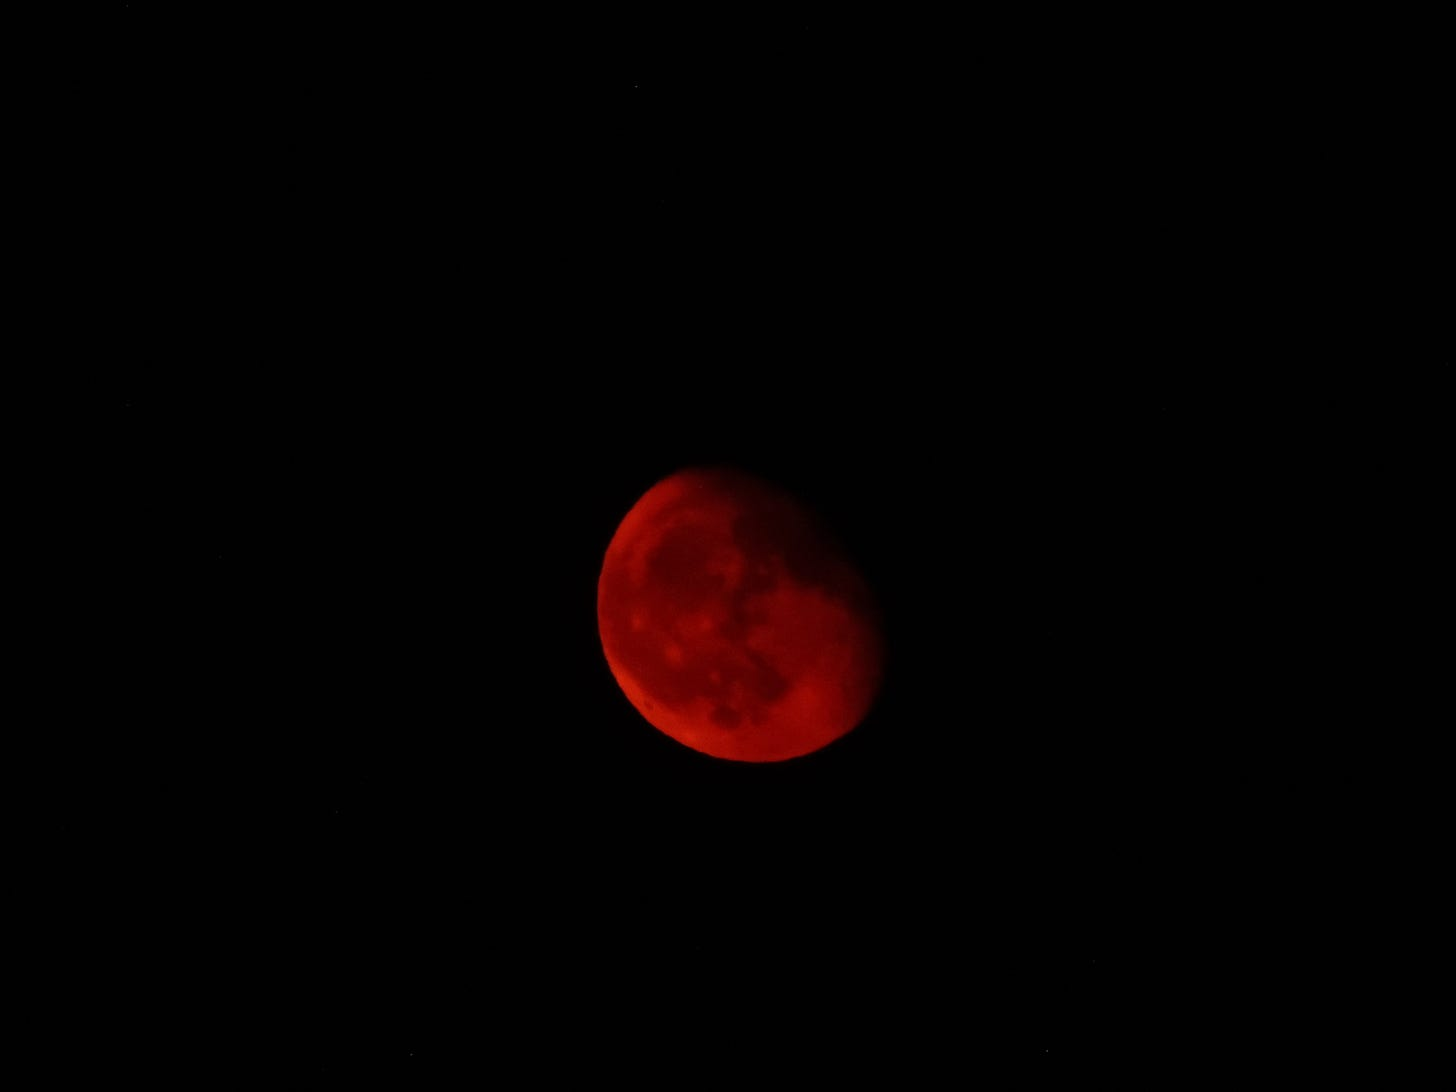 A blood red moon surrounded by black sky